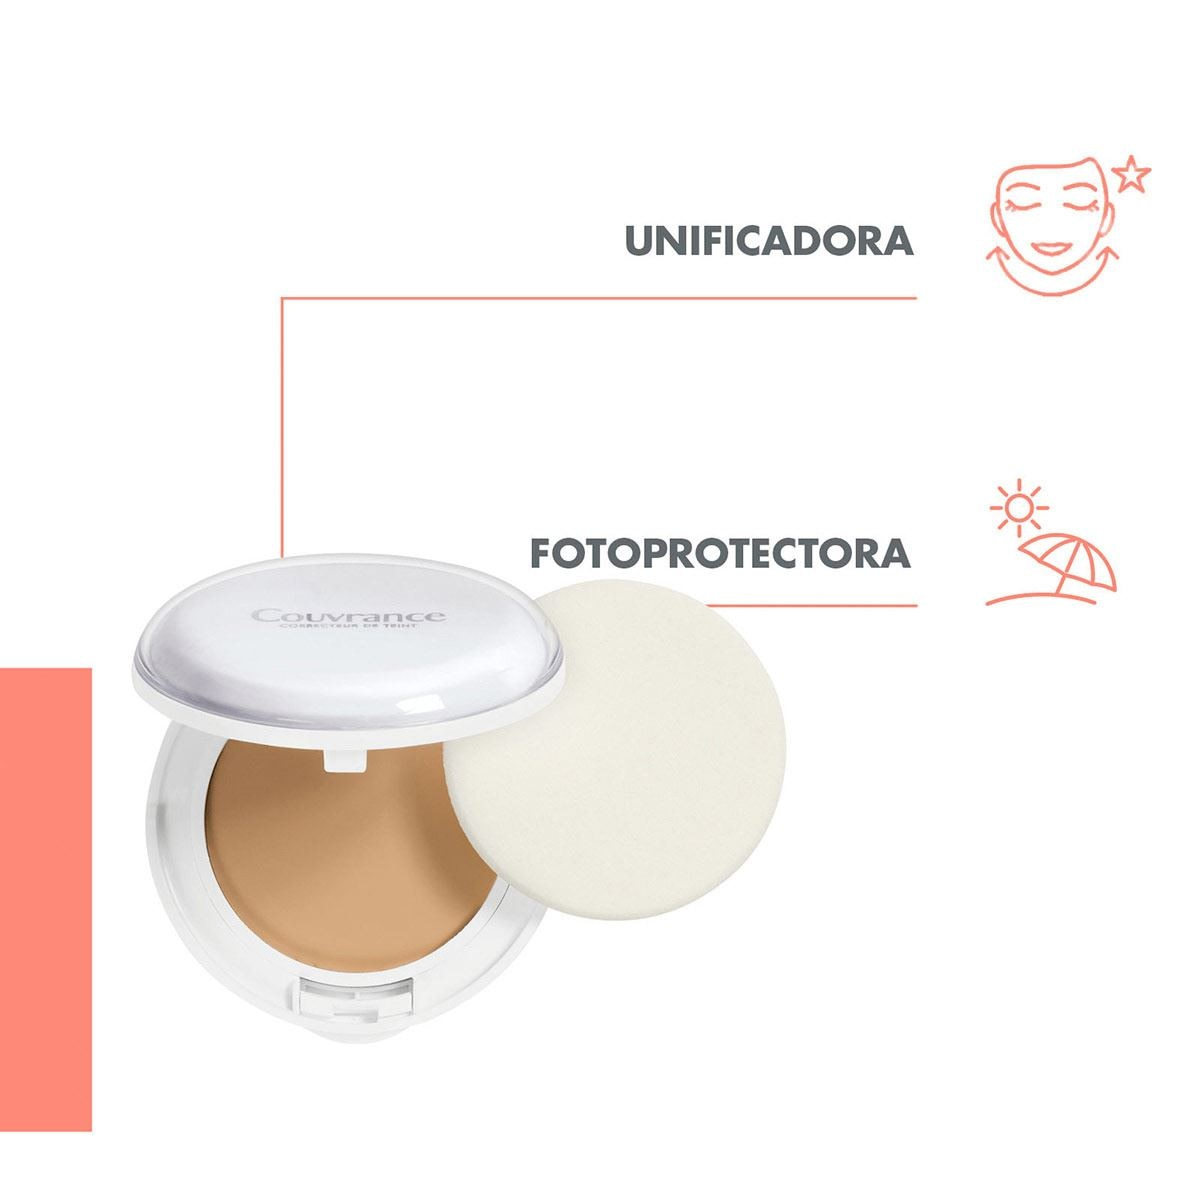 Maquillaje Corrector Facial Fps30 Beige Avène Couvrance